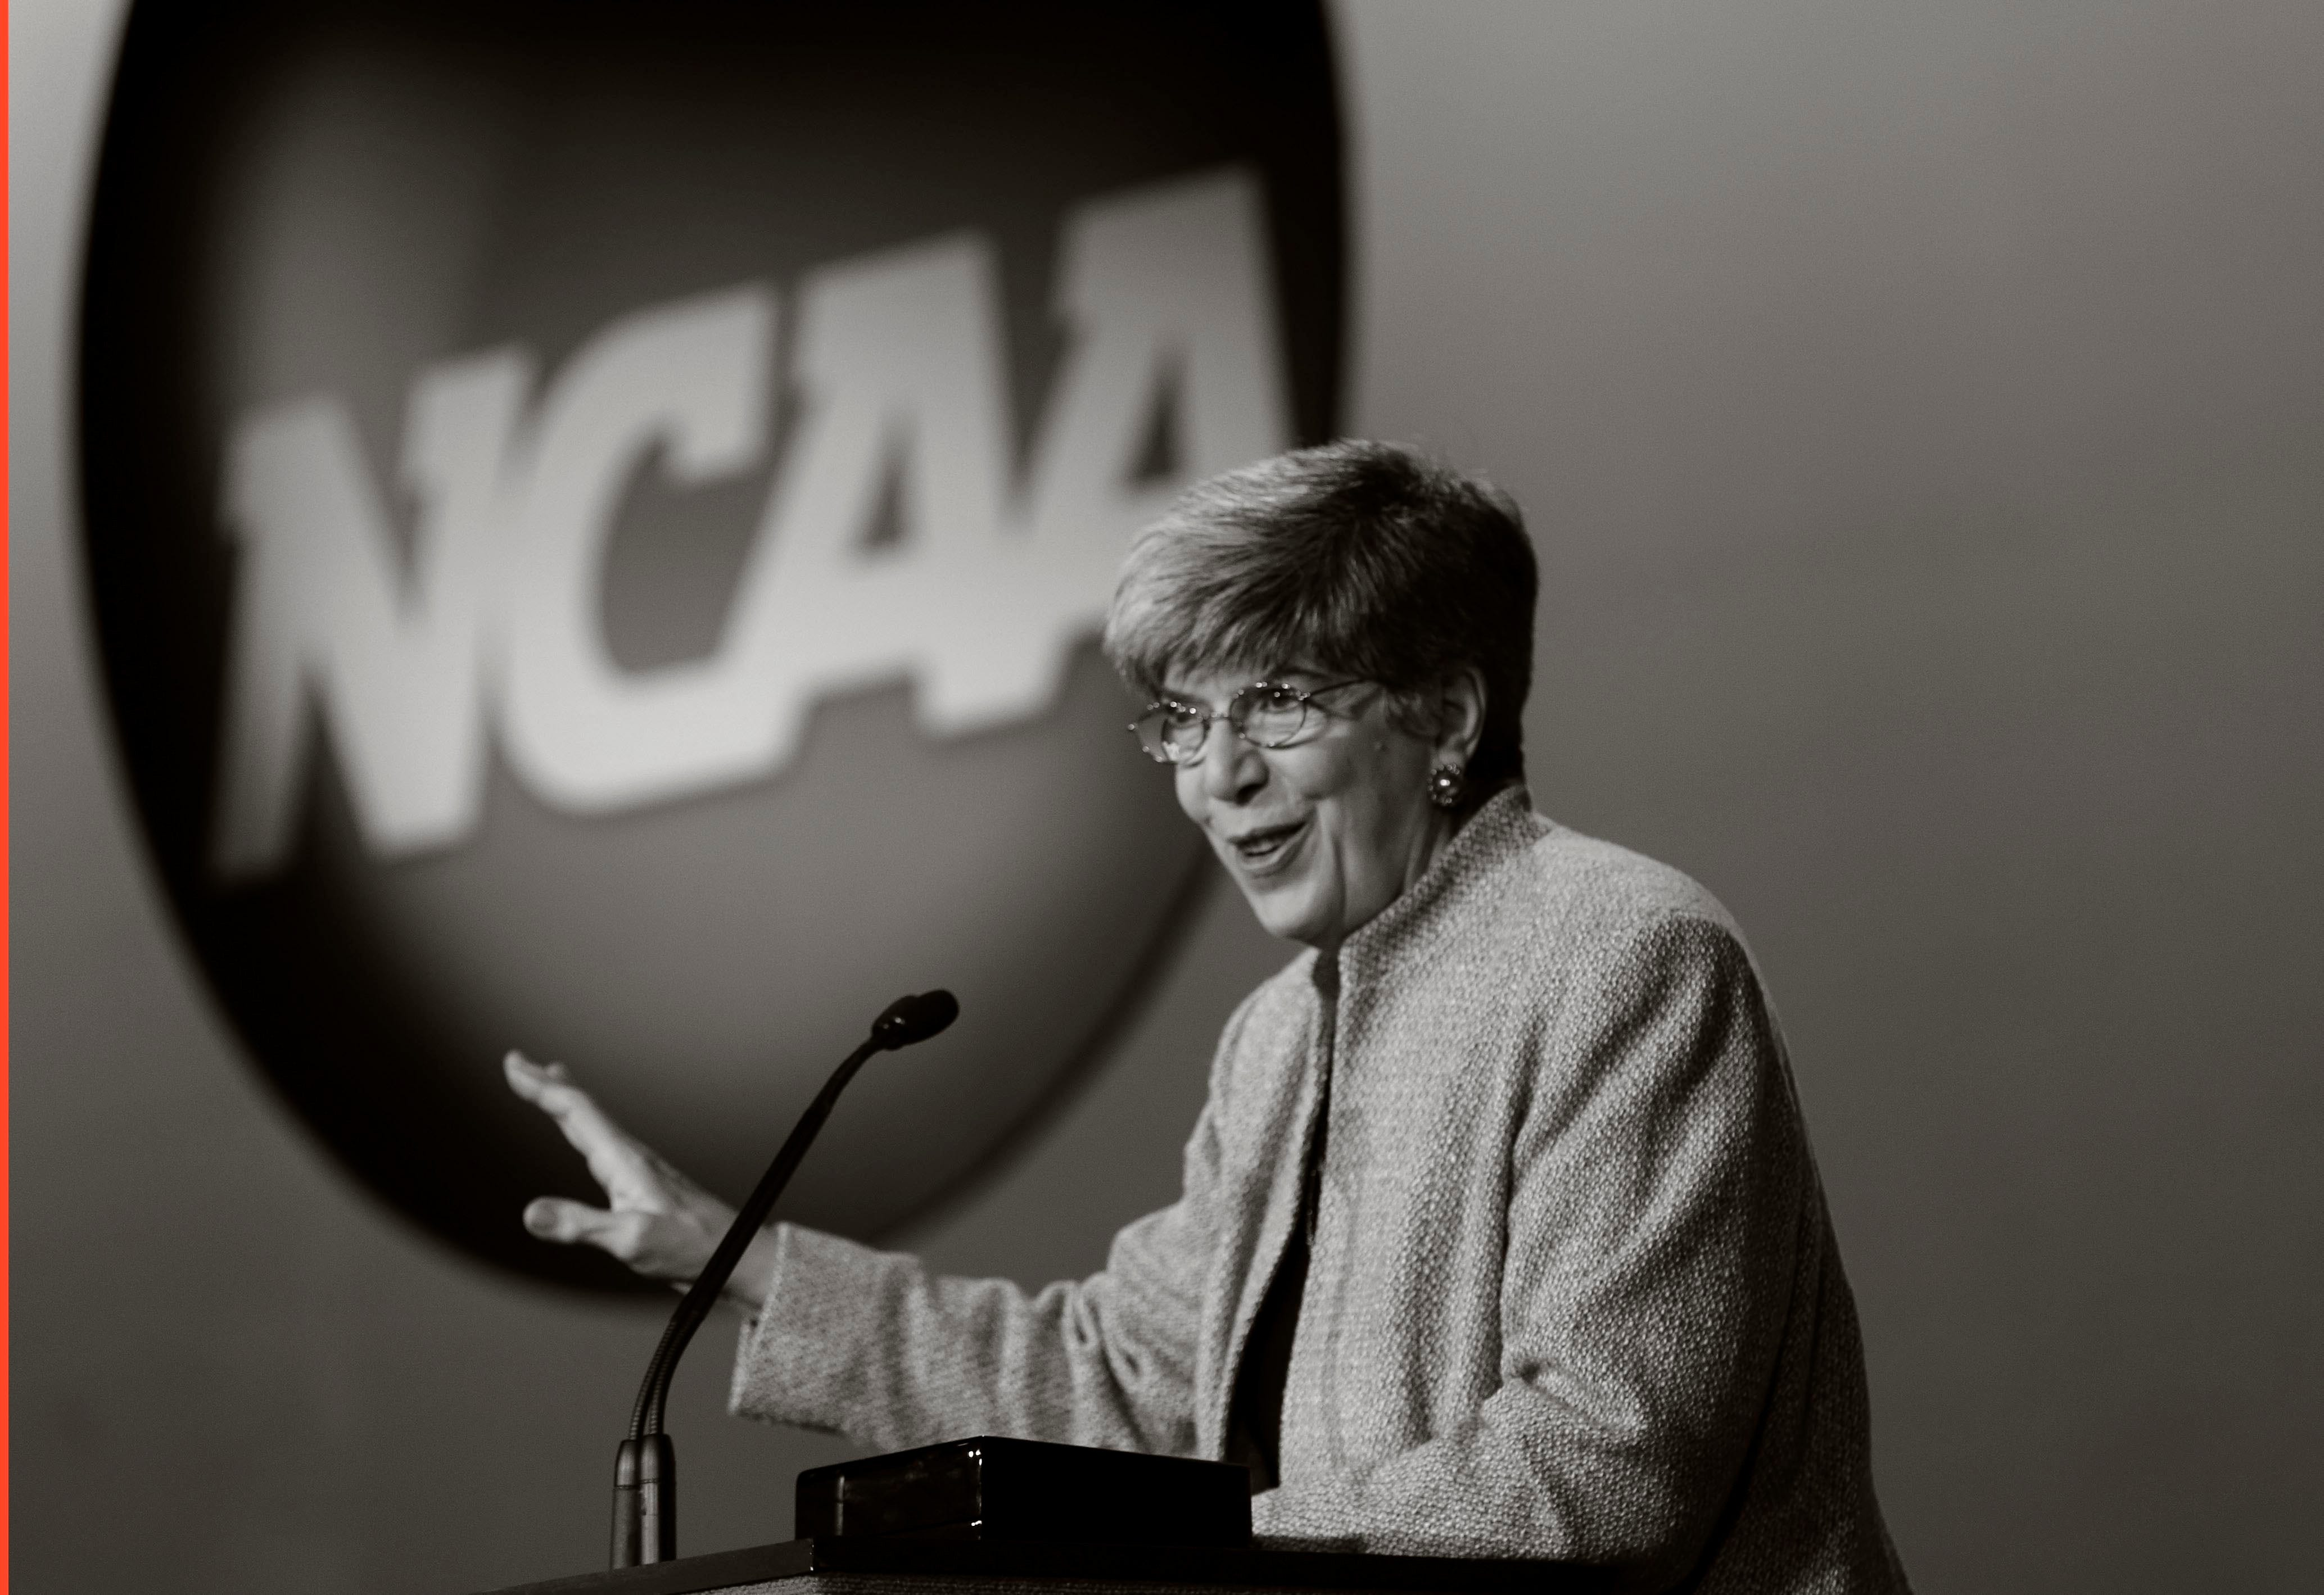 Donna Lopiano, pictured in 2013, is an educator, former coach, longtime director of women's athletics at the University of Texas at Austin and former CEO of the Women's Sports Foundation.